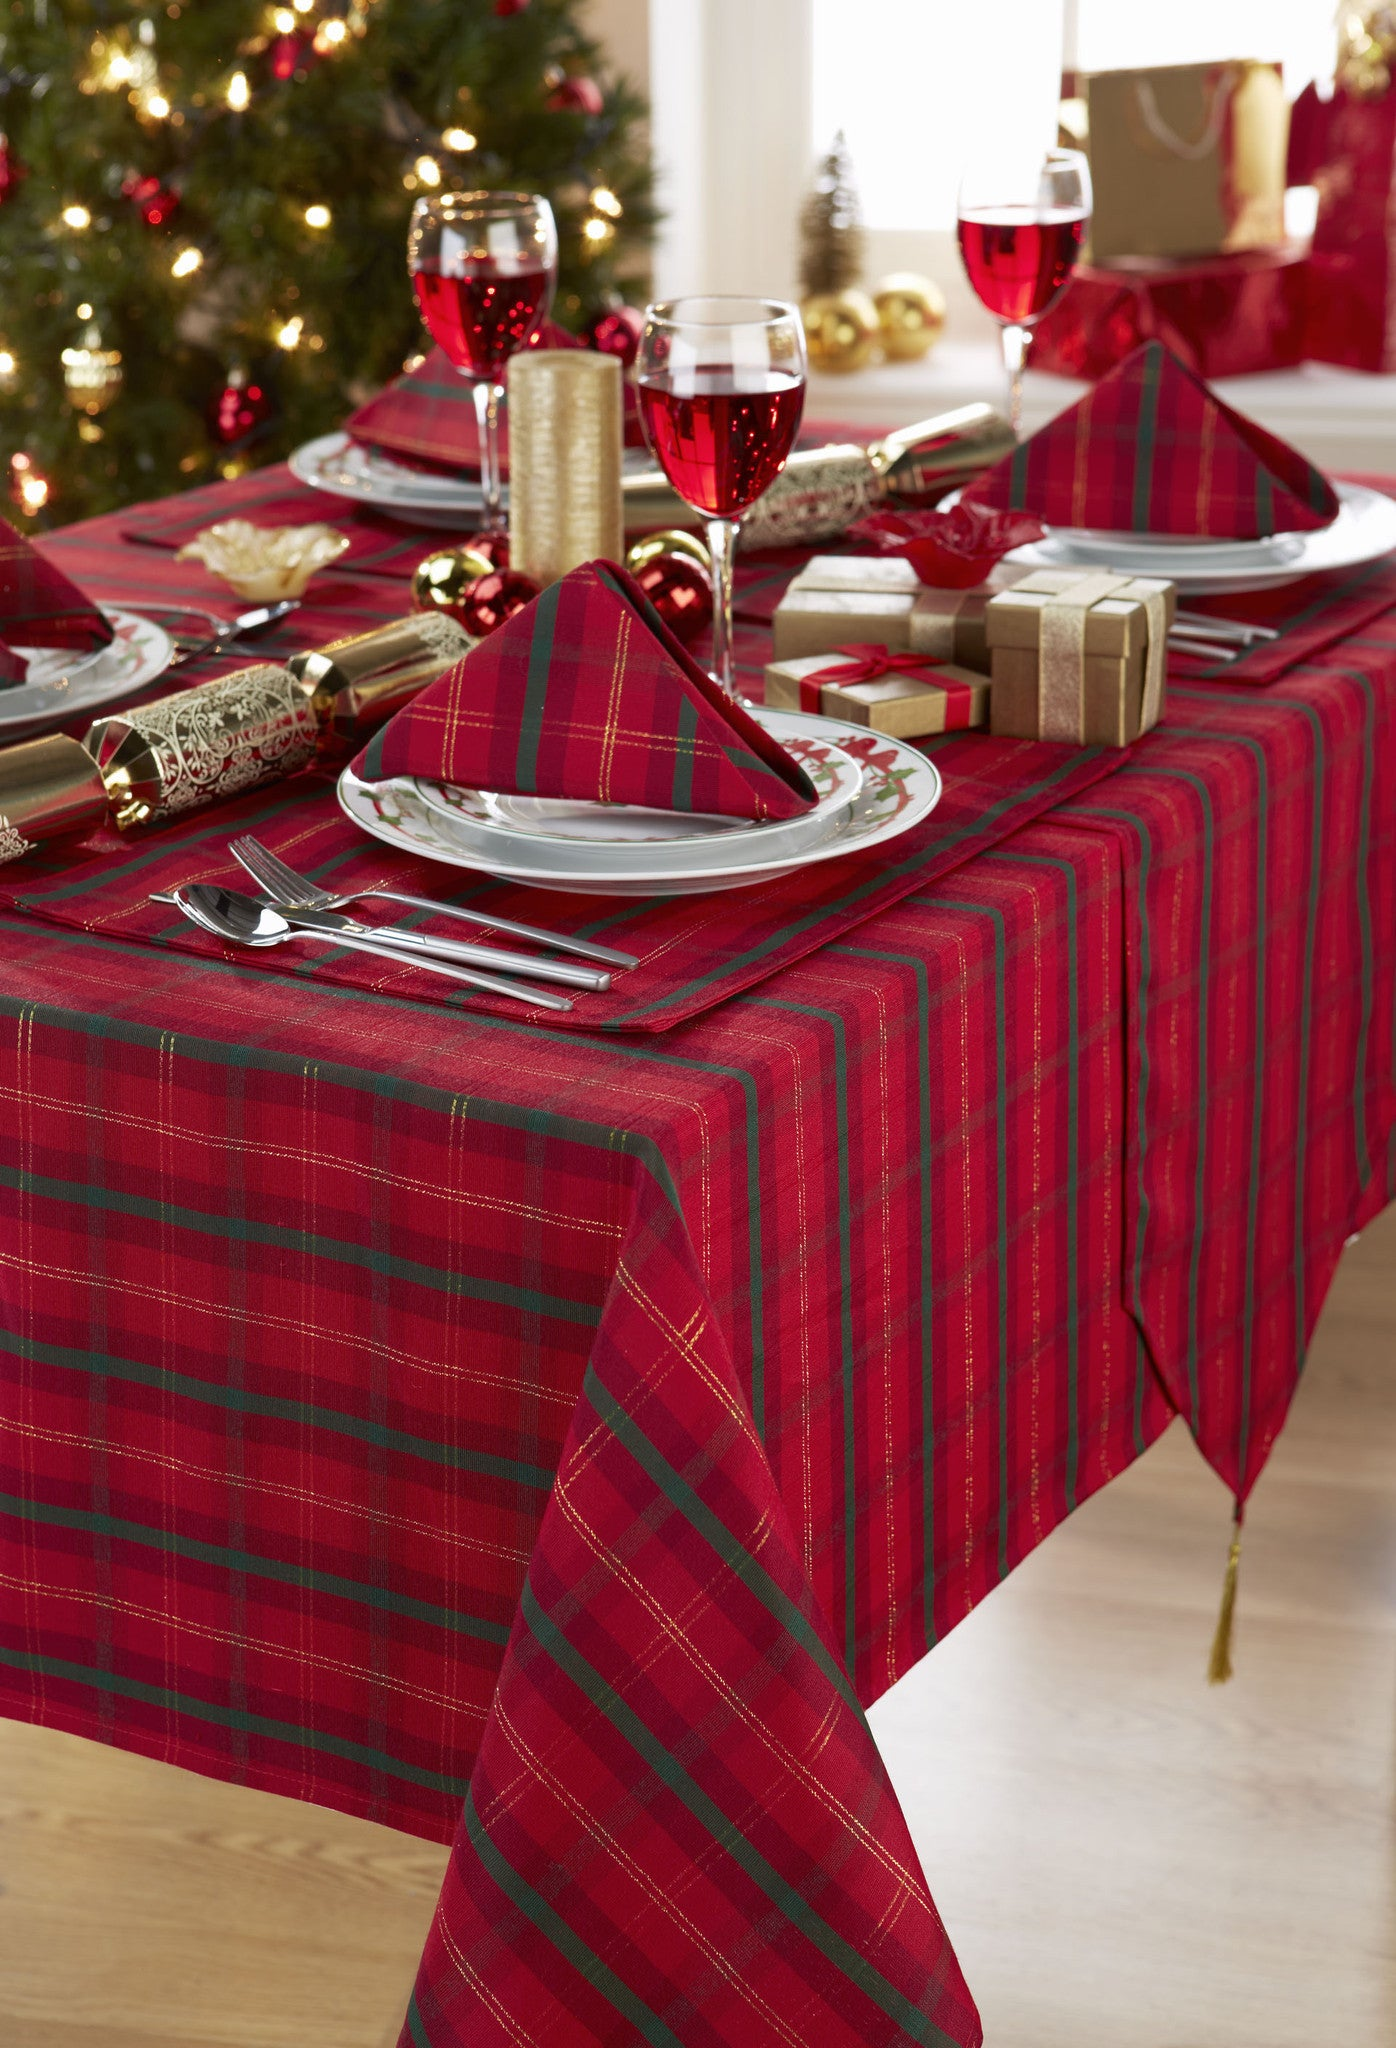 Christmas Tablecloths.Tartan Red Gold Christmas Tablecloths And Accessories Sold Seperately